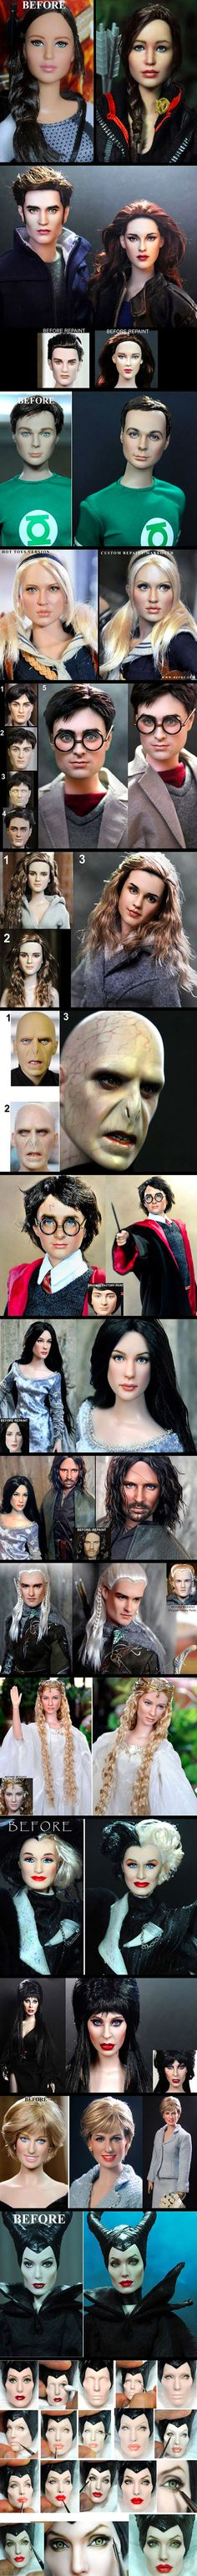 "The impressive new version of the Katniss doll was done by Noel Cruz, one of the most prominent repaint artists in the doll community. Cruz has been long known for ""character & celebrity based dolls due to their uncanny resemblance to the people they portray."""